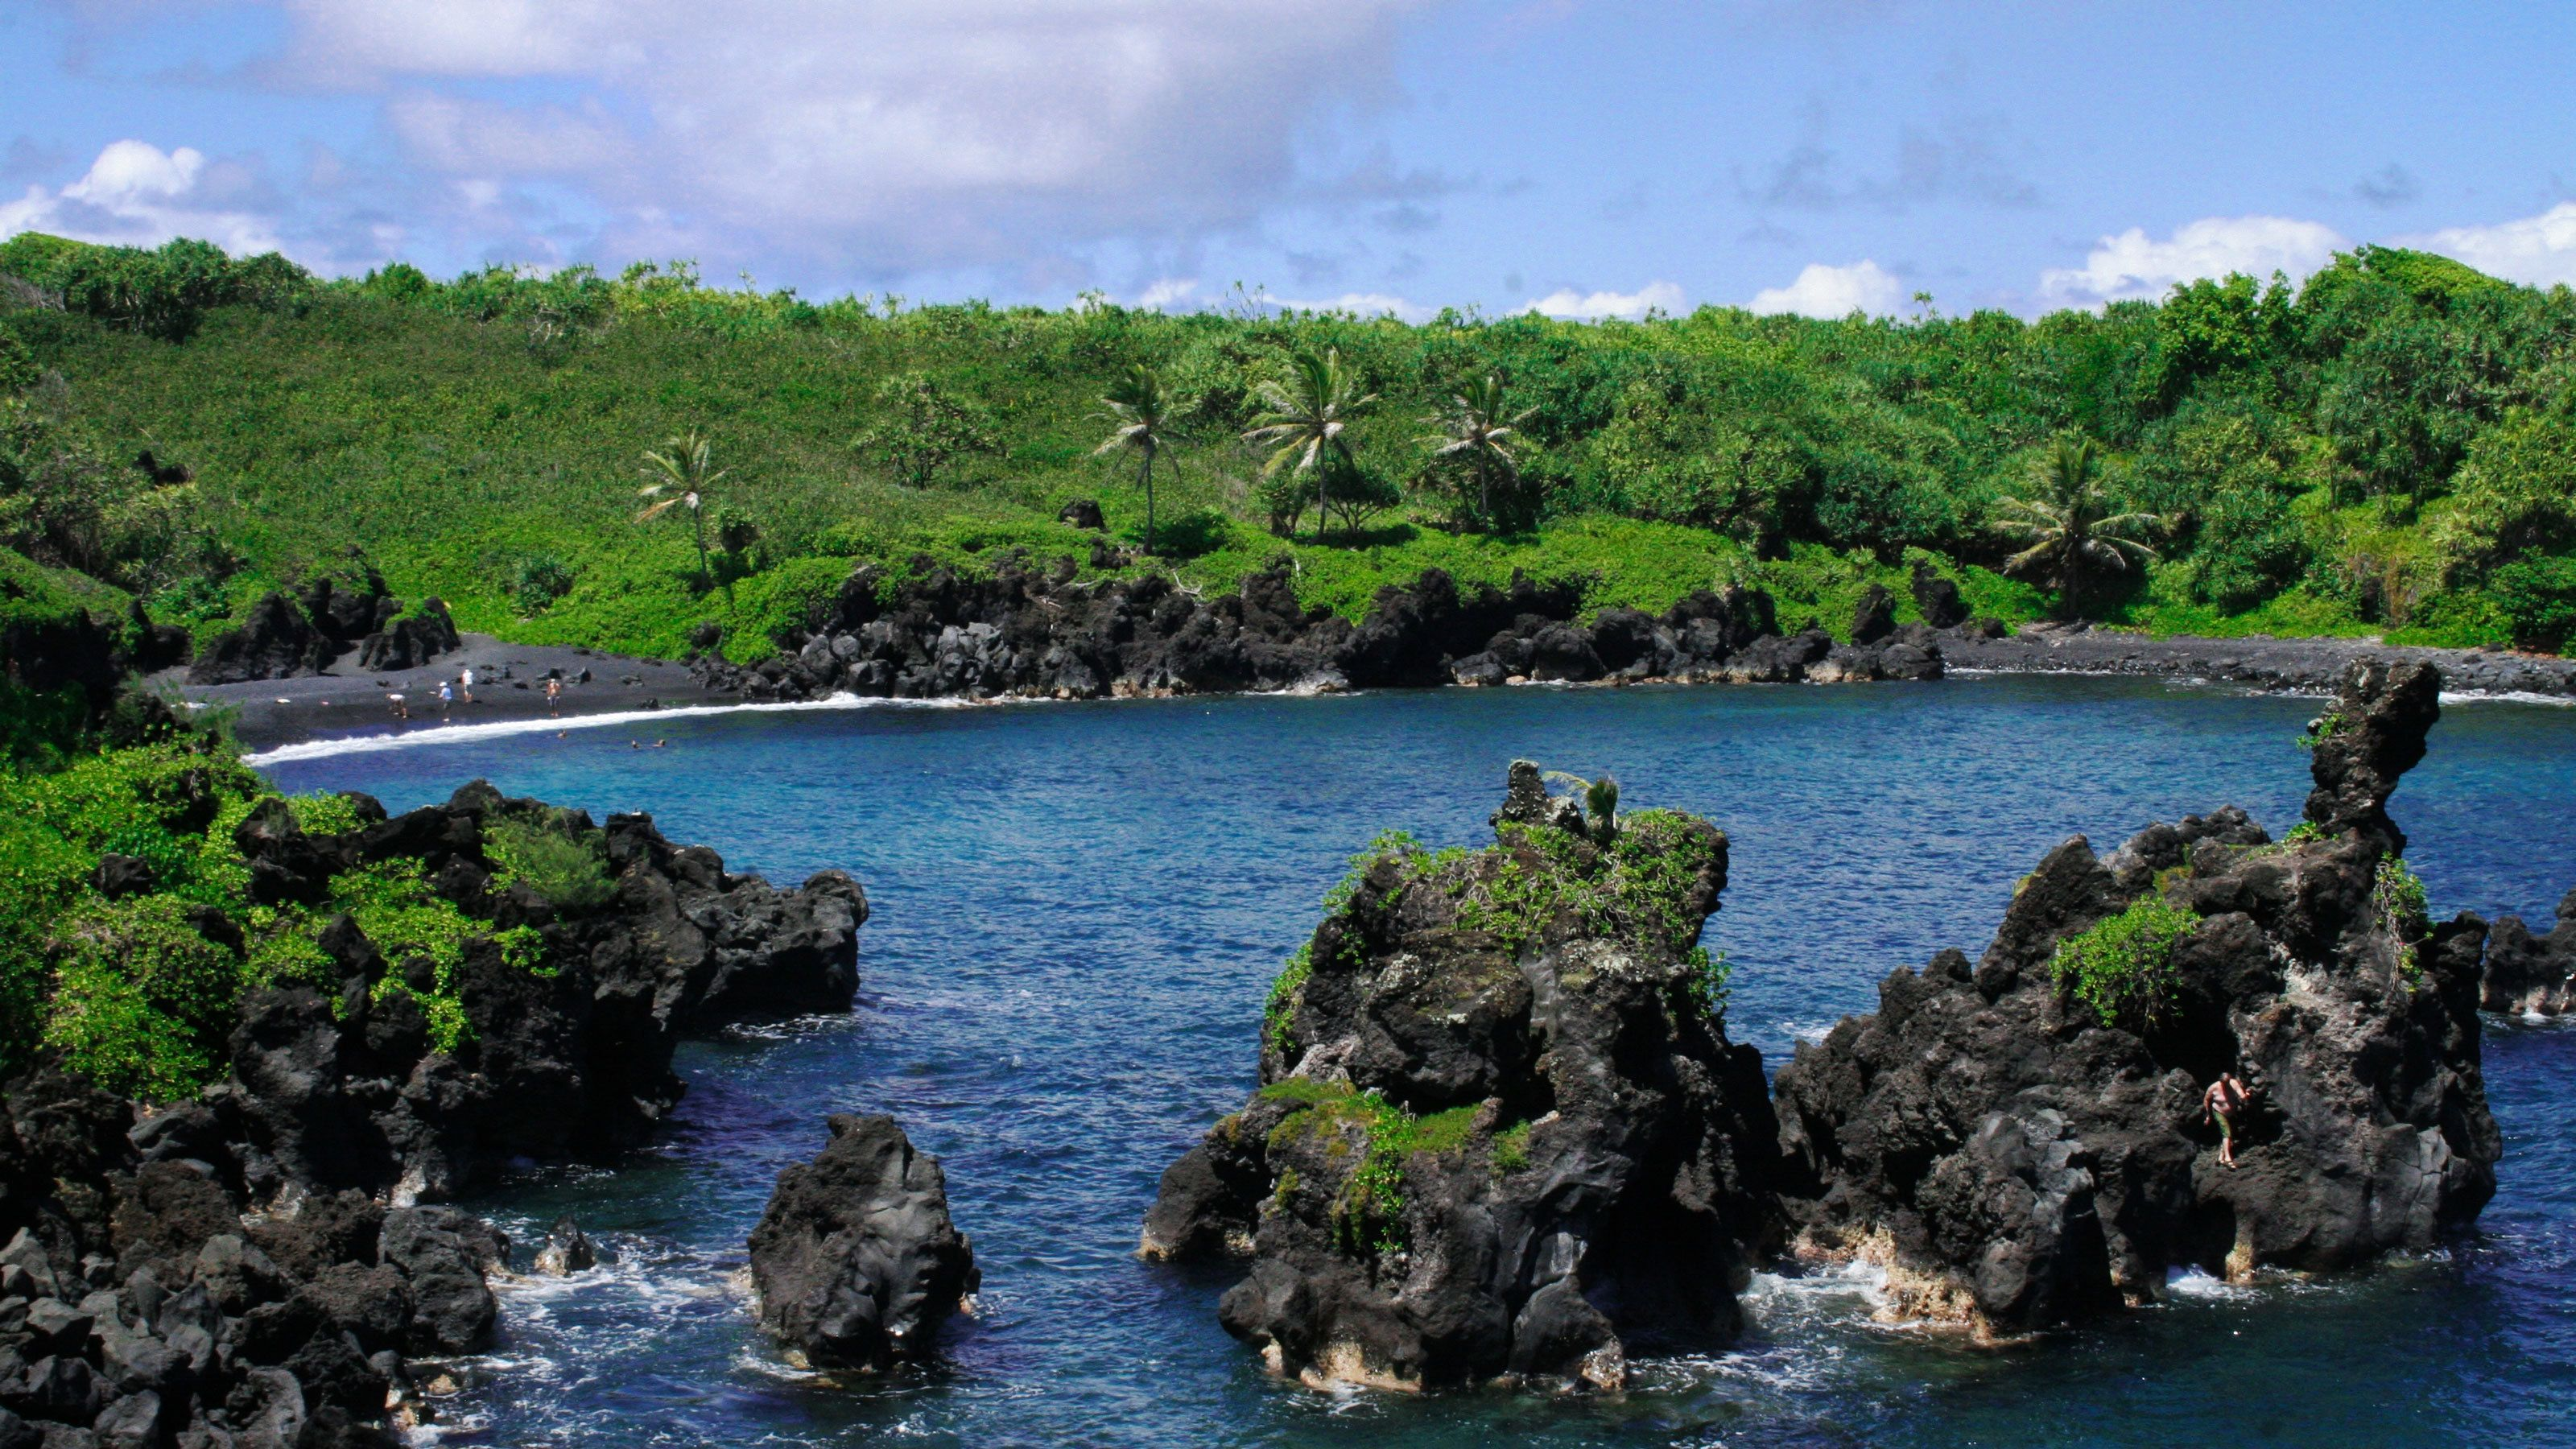 Water with jagged rocks in the Hana Adventure in Maui